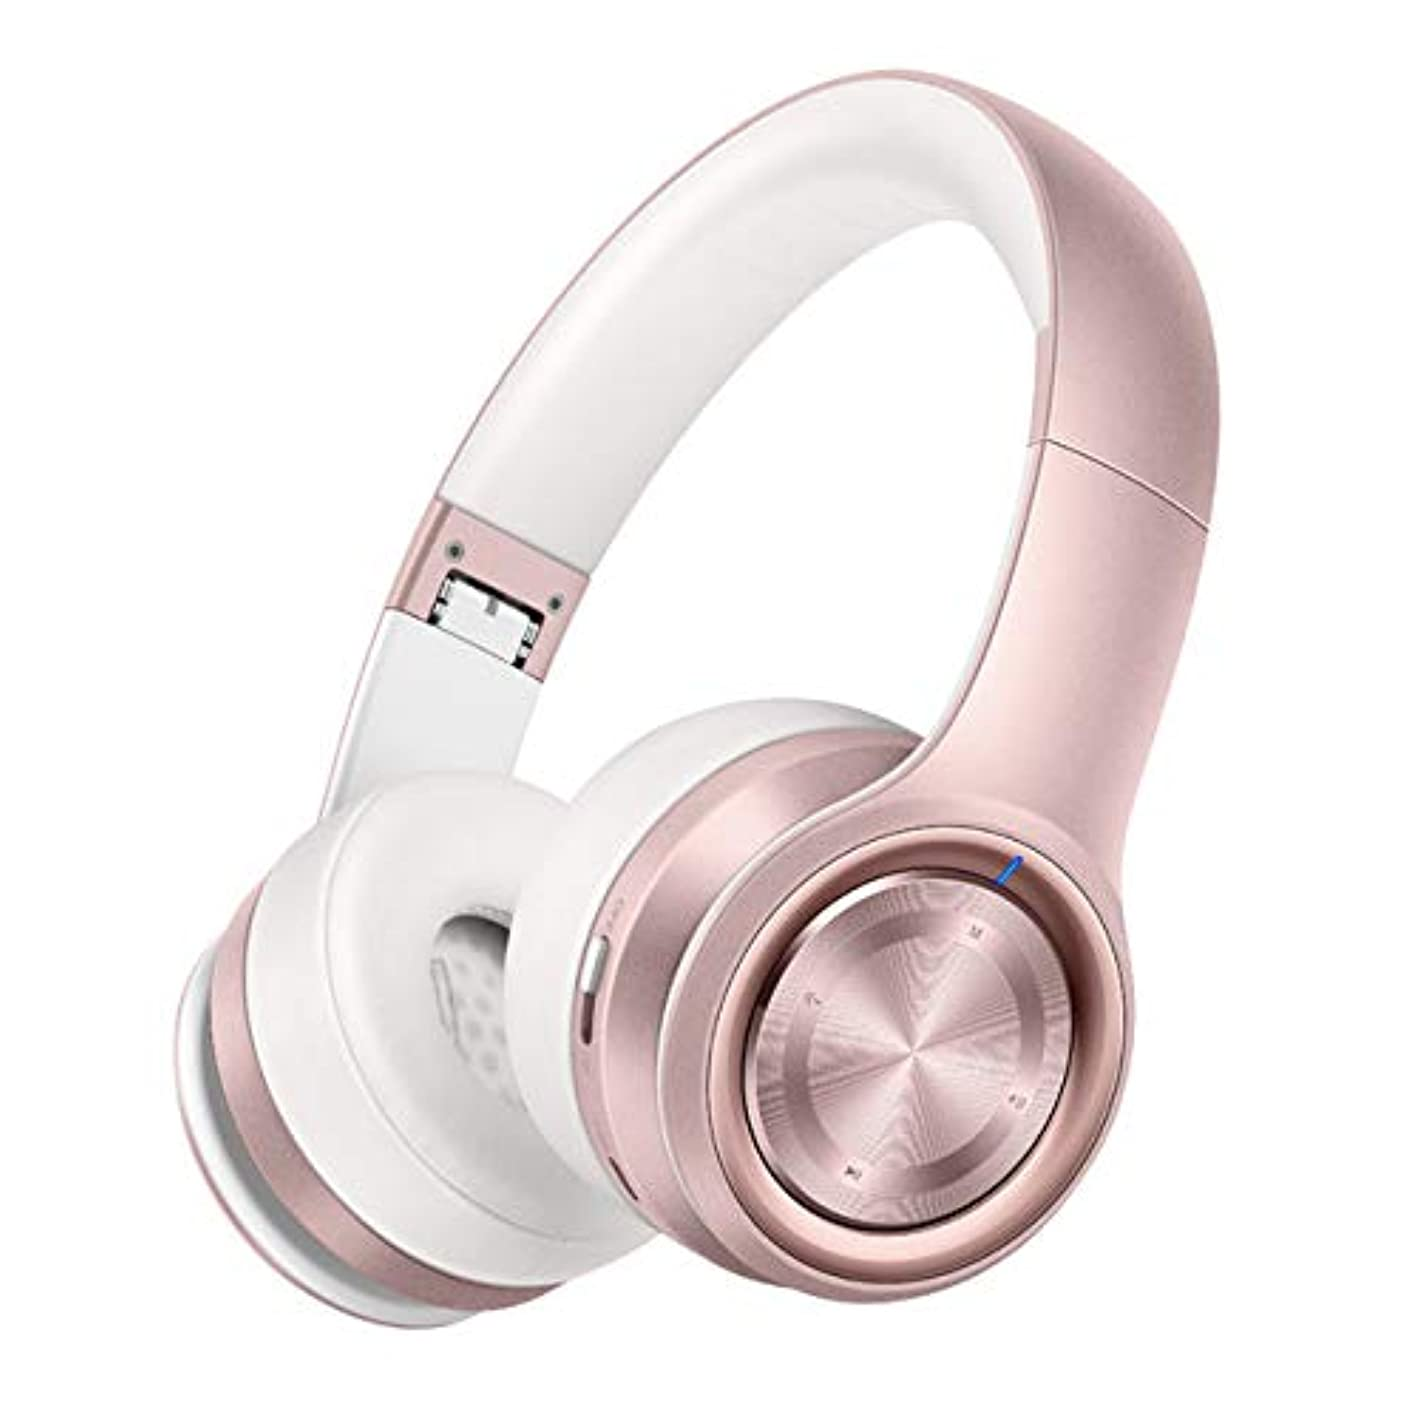 Noise Cancelling Over-Ear Headphones, Wireless Bluetooth Headphones Over Ear Earphones with 28 Hrs Playtime with Built-in Mic muiizrisbau371